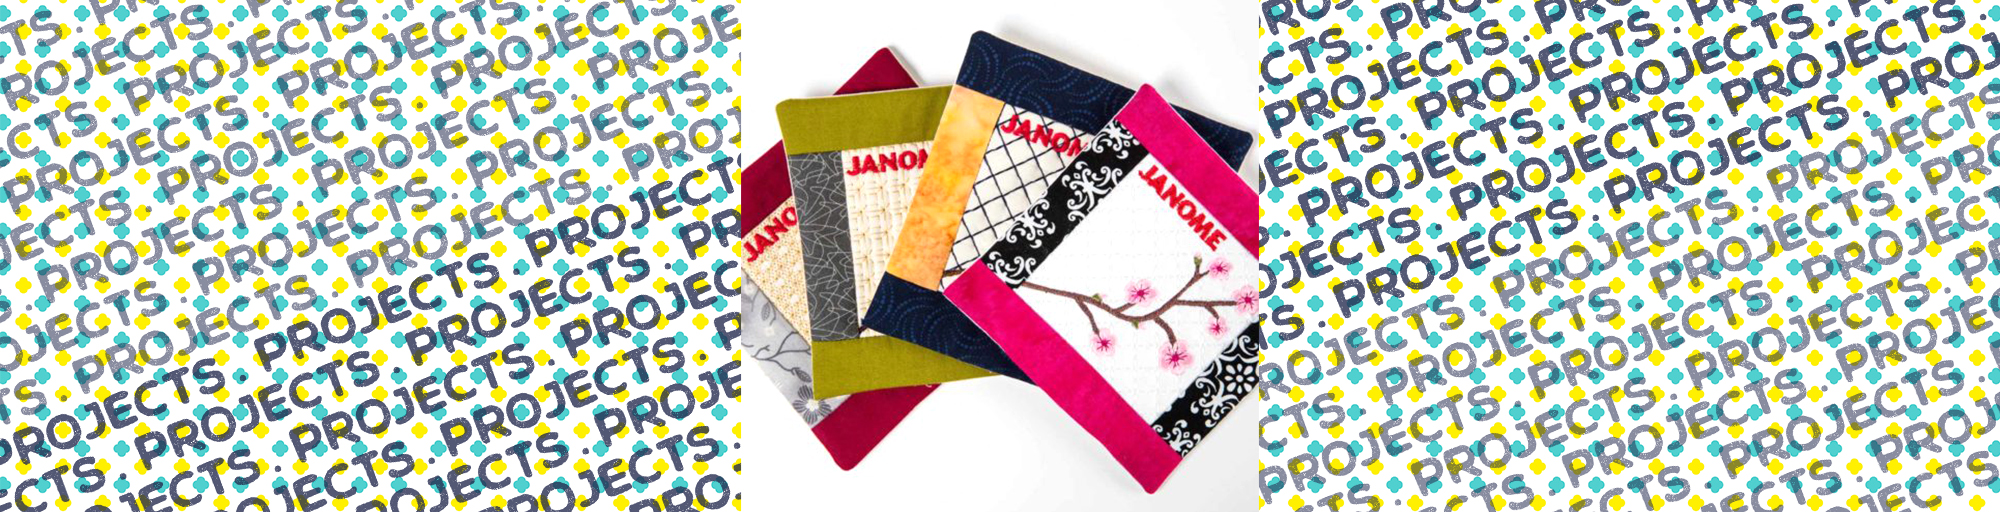 janome sewing project coasters